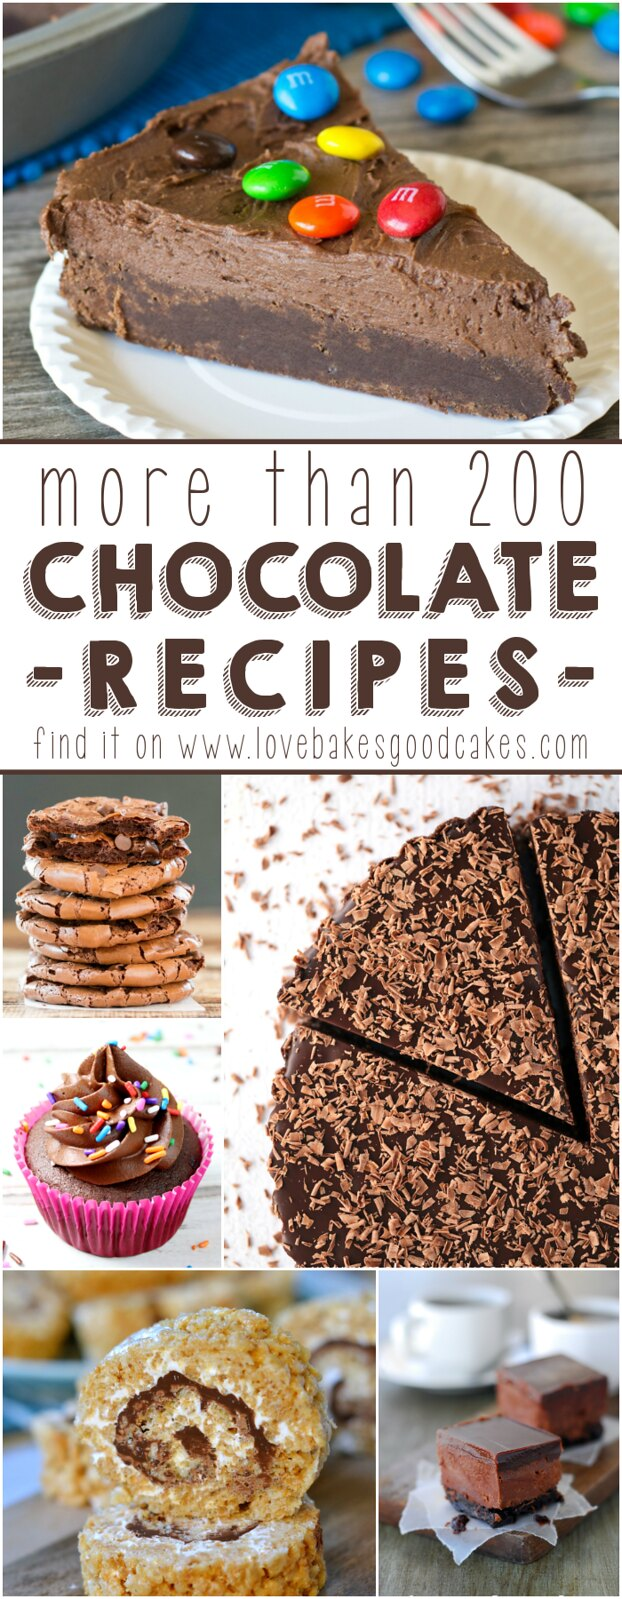 MORE than 200 chocolate recipes!!! I have to try all of them!